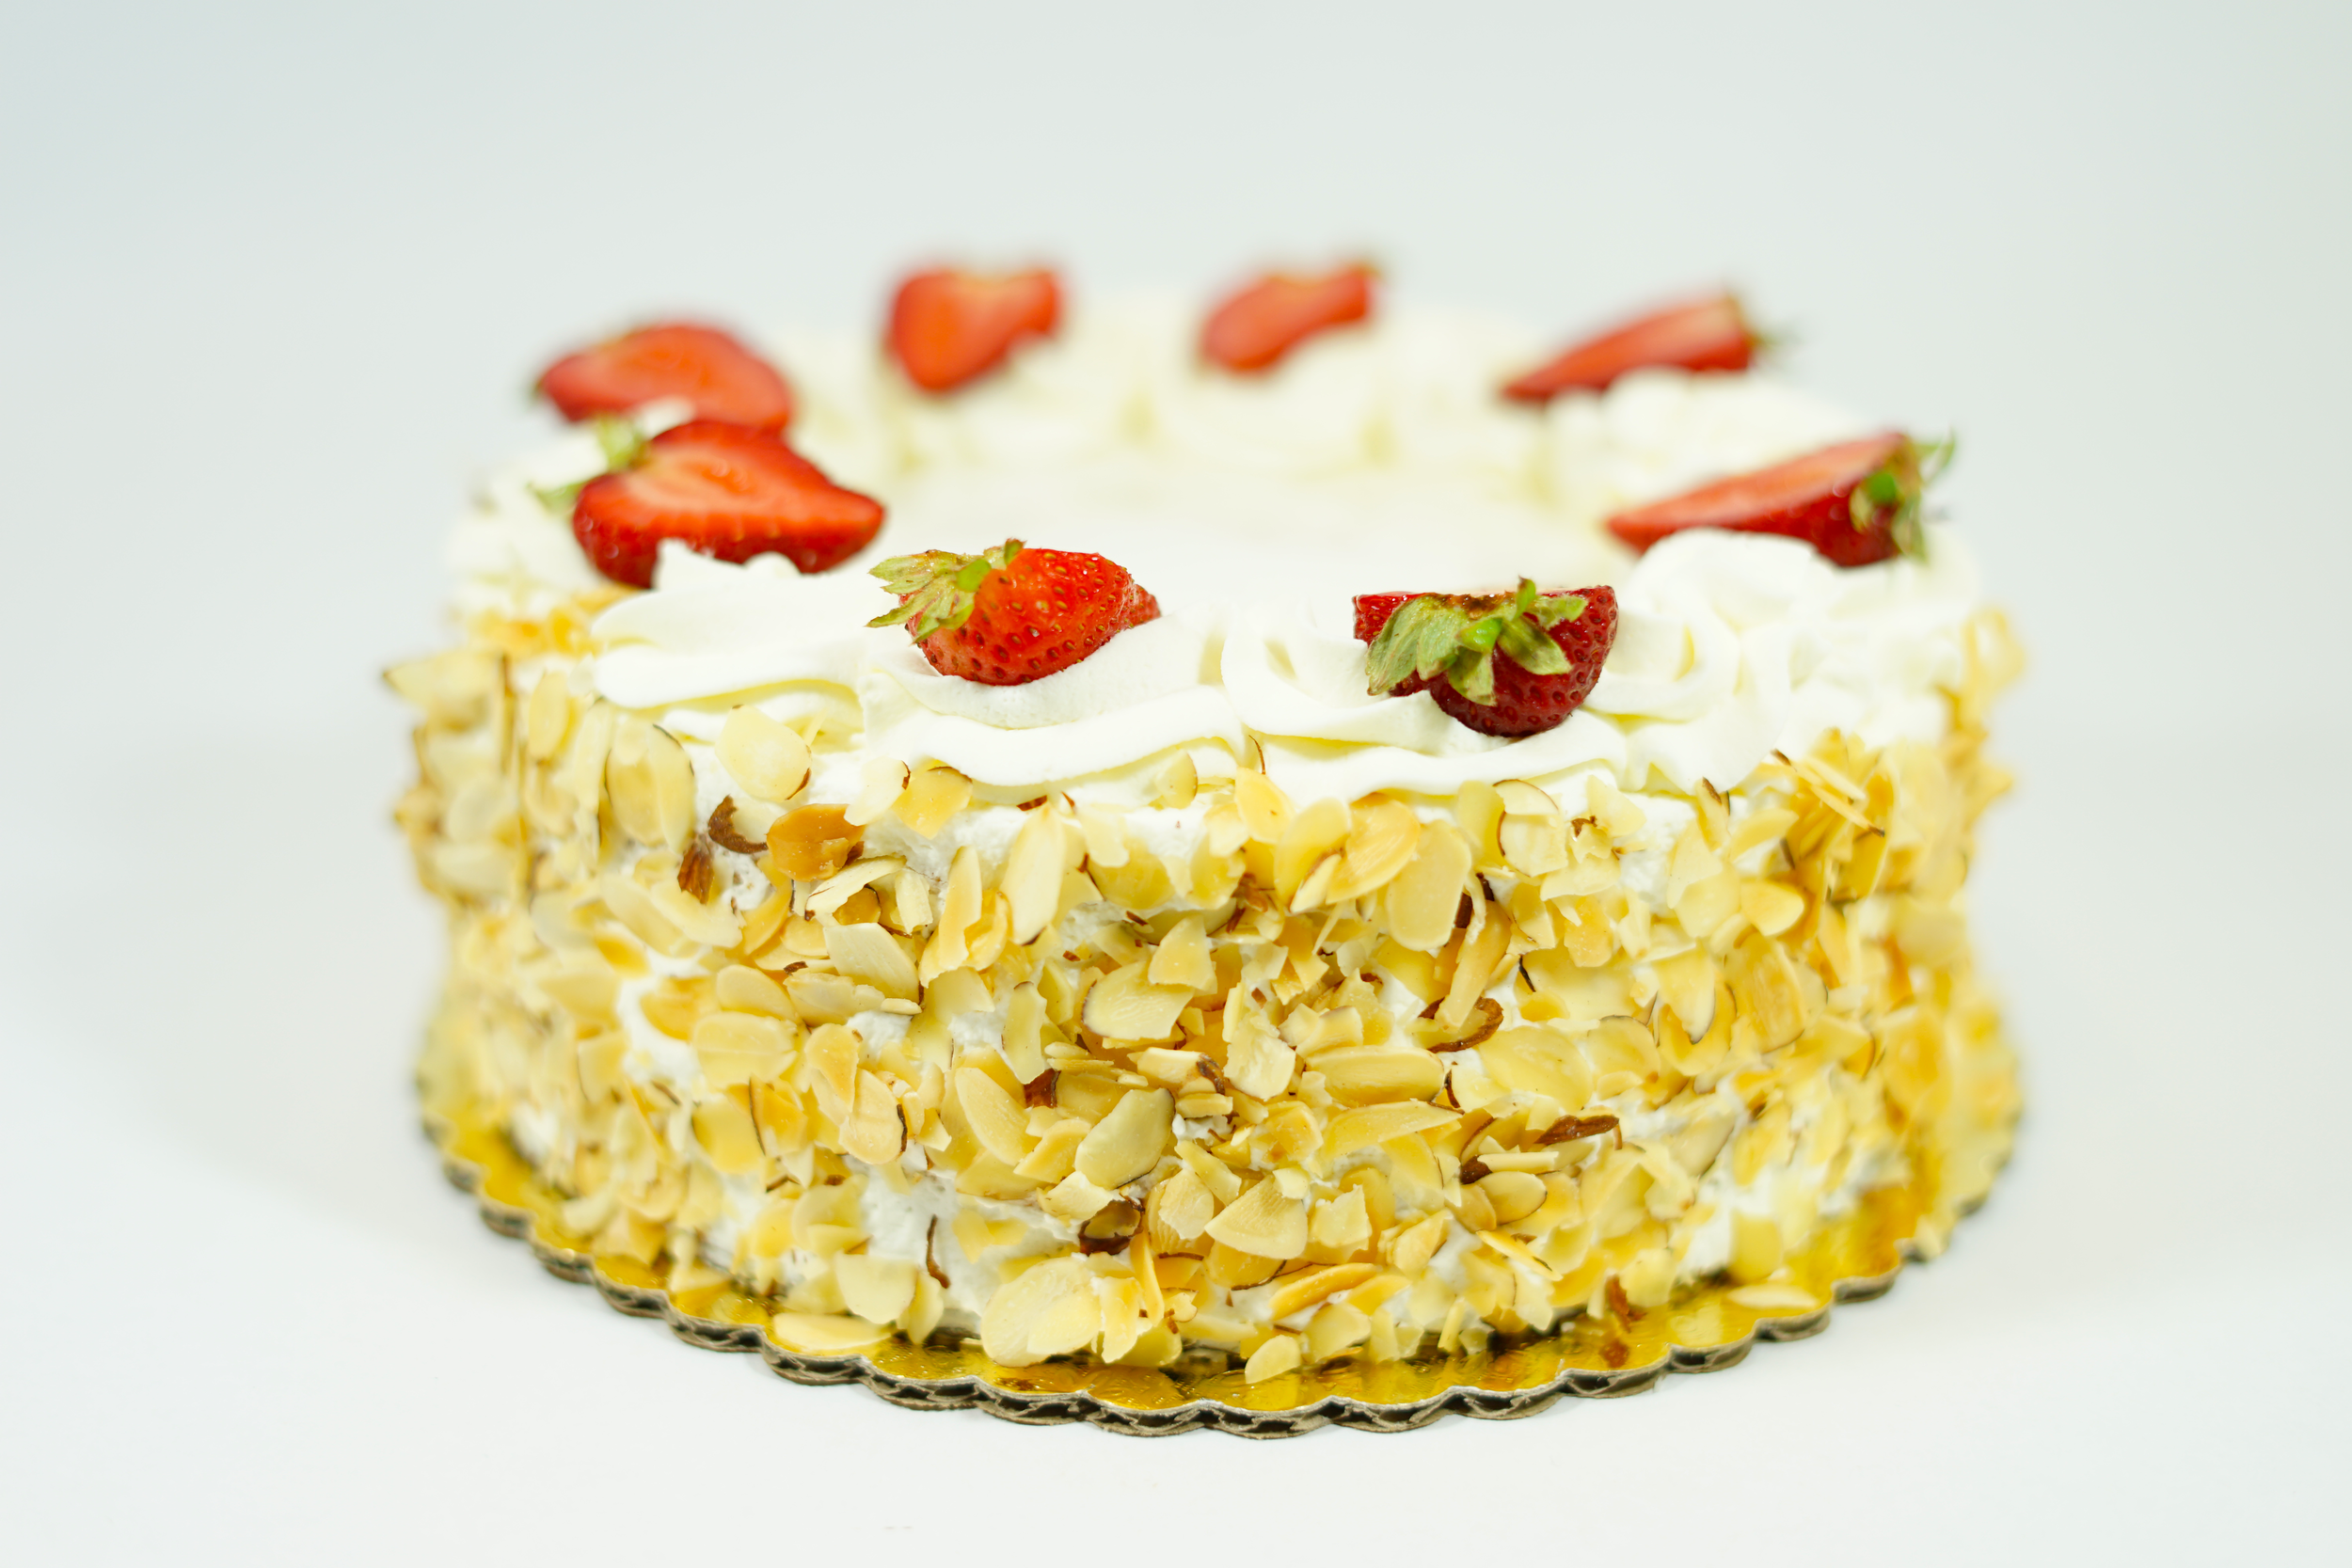 Strawberry Shortcake - A white cake with raspberry syrup, Bavarian cream, layer of strawberry preserve, fresh strawberries, and raspberry coulis filling. Iced with whipped cream and sides covered with slivers of almonds.